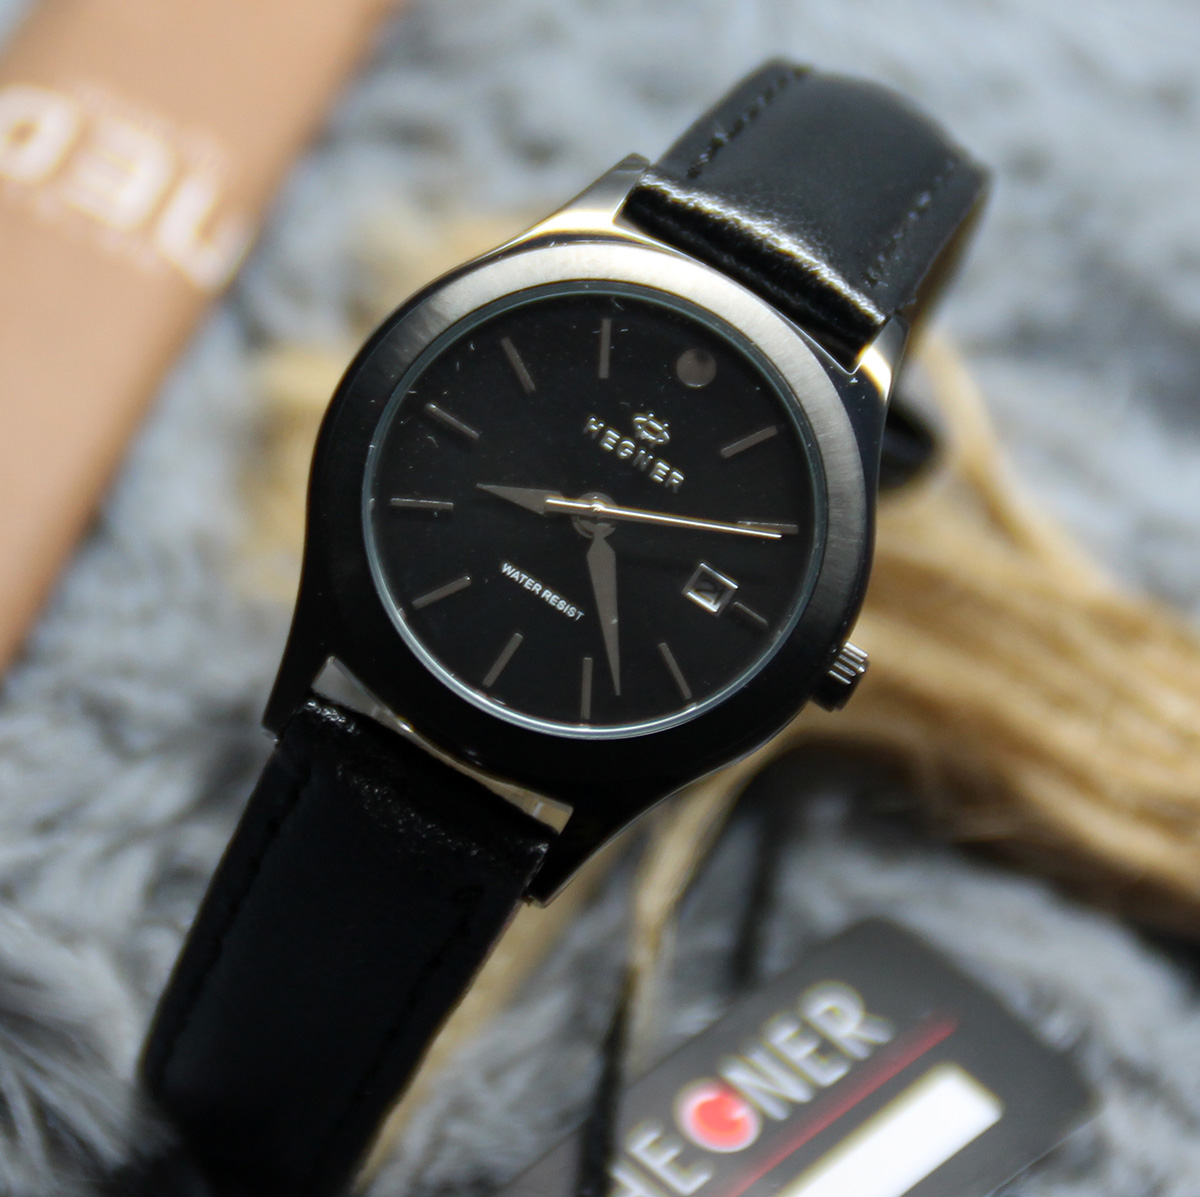 Jam Tangan Wanita Original Hegner 1528 Spec Dan Daftar Harga Gc Leather Buy Ladies Watch Terbaru Source Jual